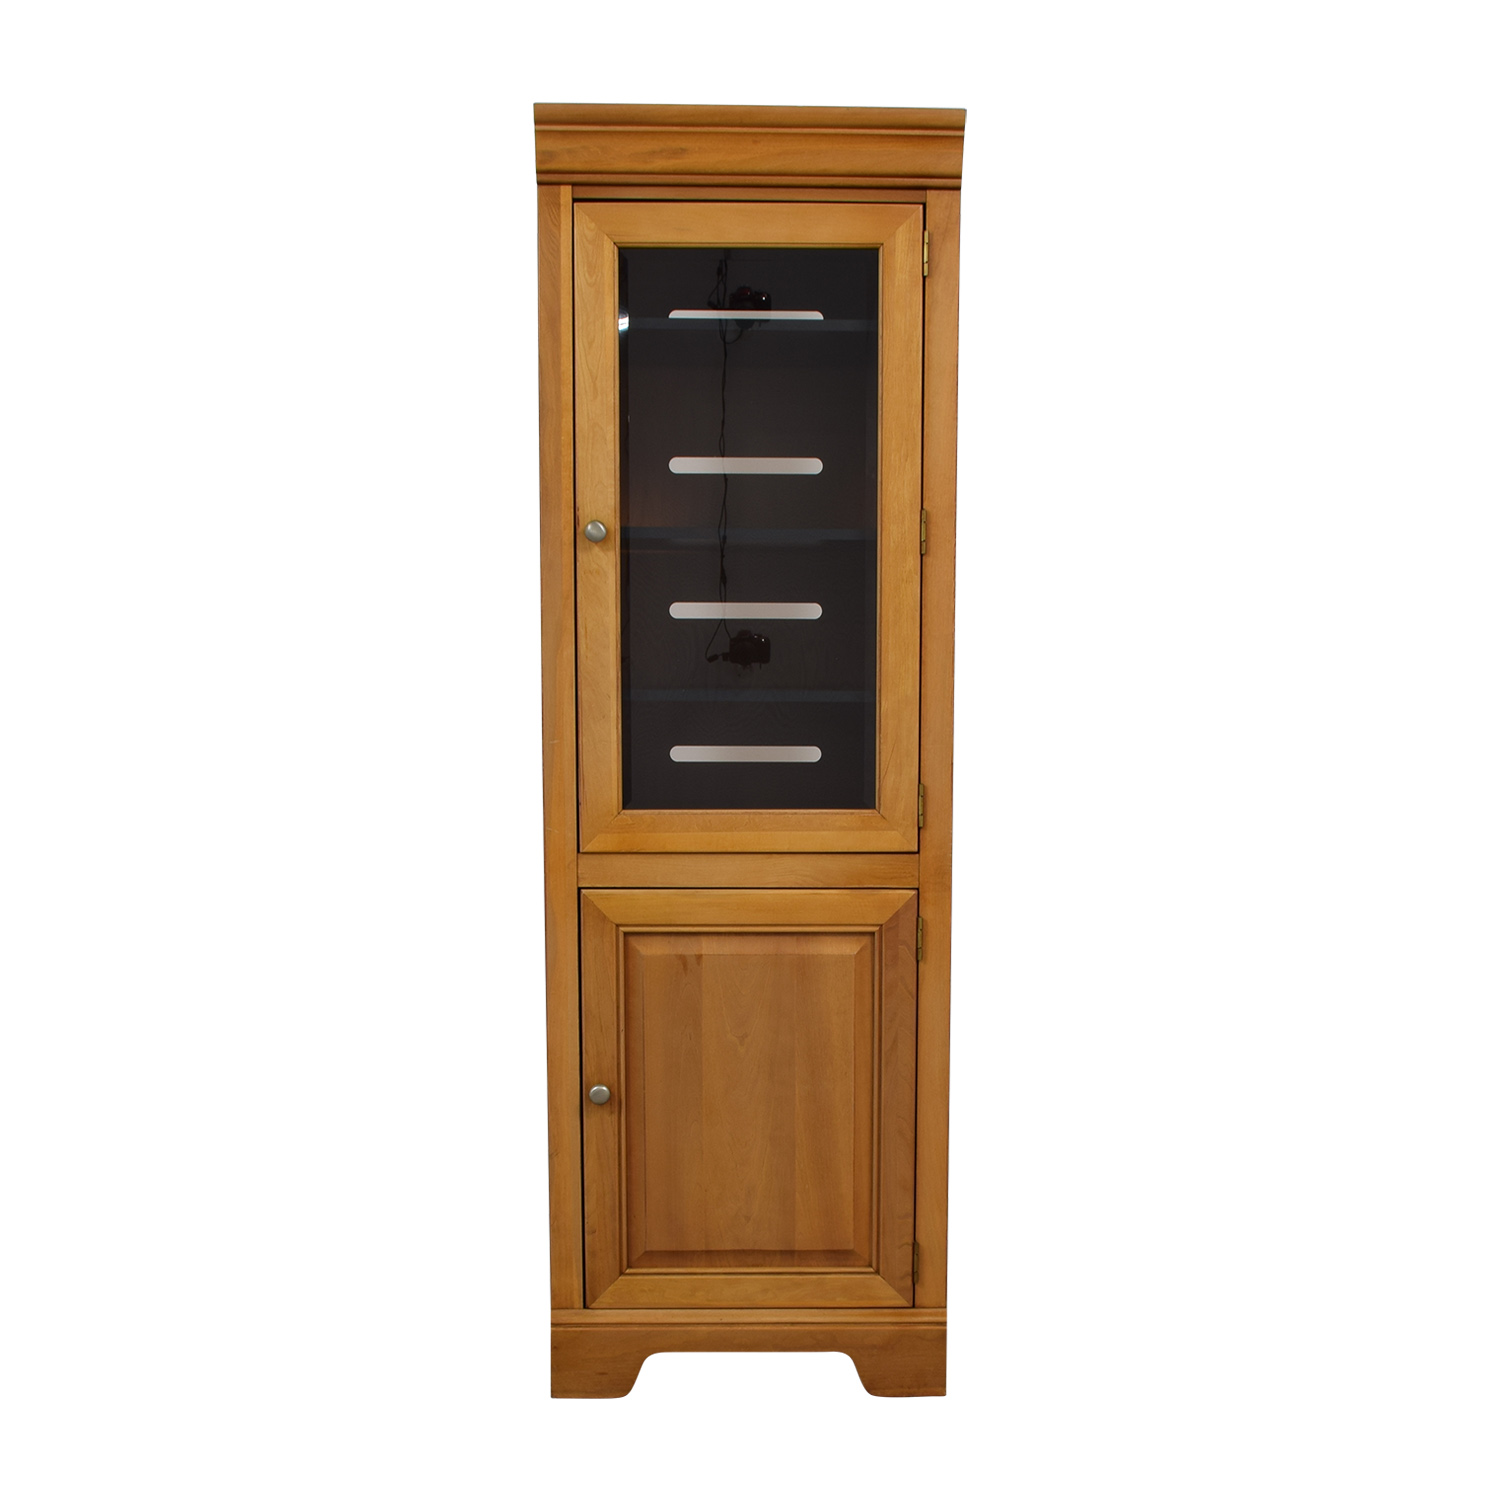 buy Stanley Furniture Company Stanley Furniture Company Tall Wood and Glass Cabinet online